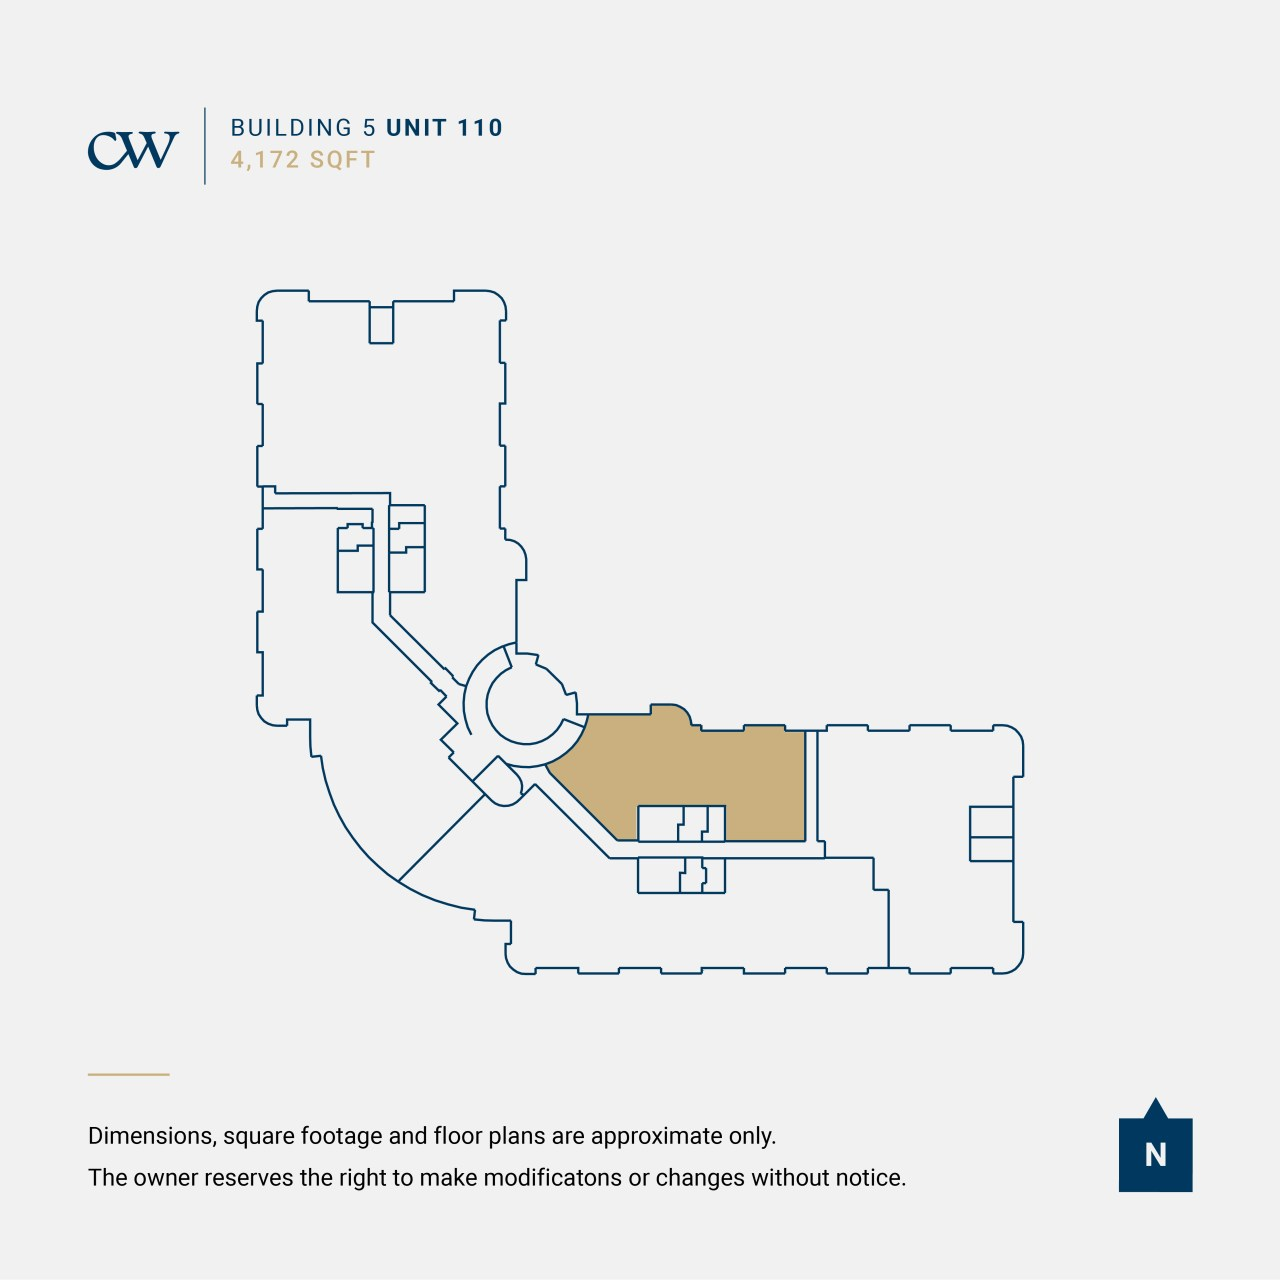 https://i0.wp.com/crestwoodcorporatecentre.com/wp-content/uploads/2020/07/Crestwood-Corporate-Centre-Floor-Plans-Building-5_Unit-110.jpg?resize=1280%2C1280&ssl=1